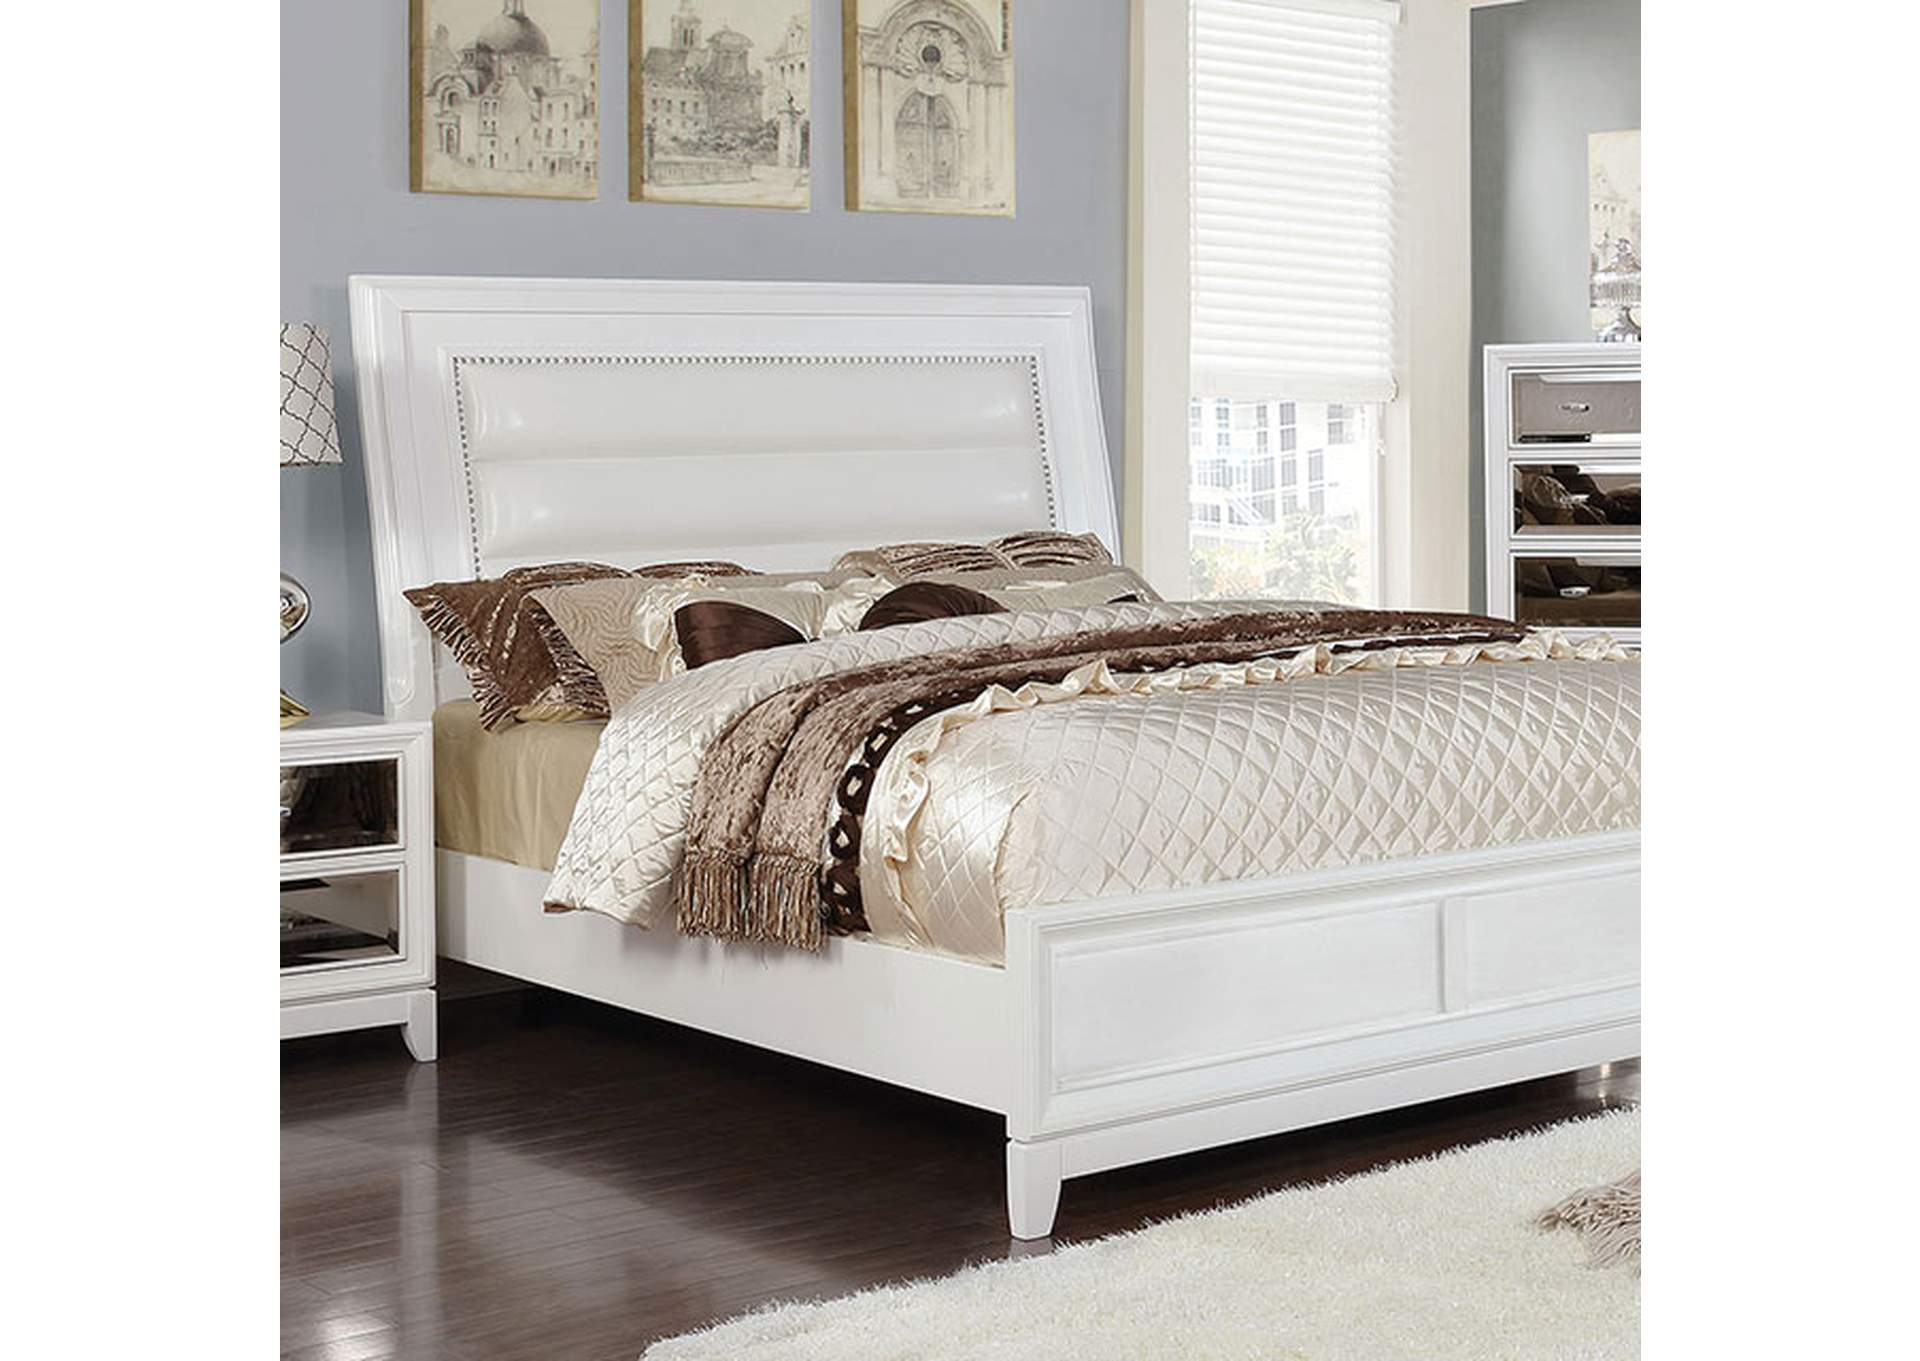 Golva White Upholstered California King Panel Bed,Furniture of America